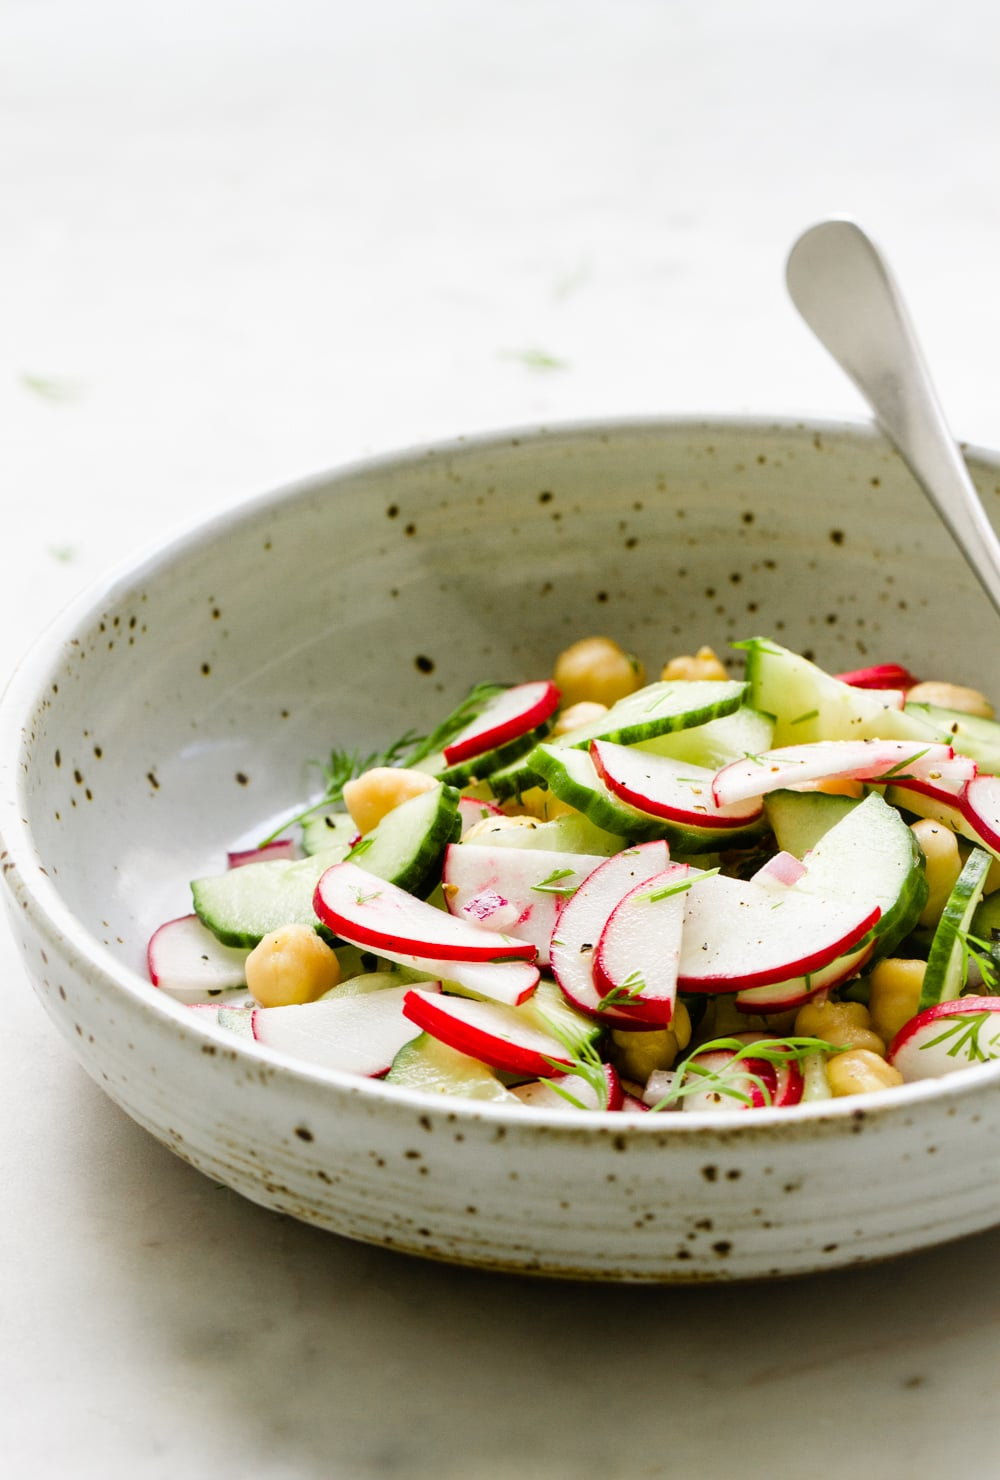 side angel view of a rustic bowl with a serving of radish cucumber salad and spoon on a marble slab